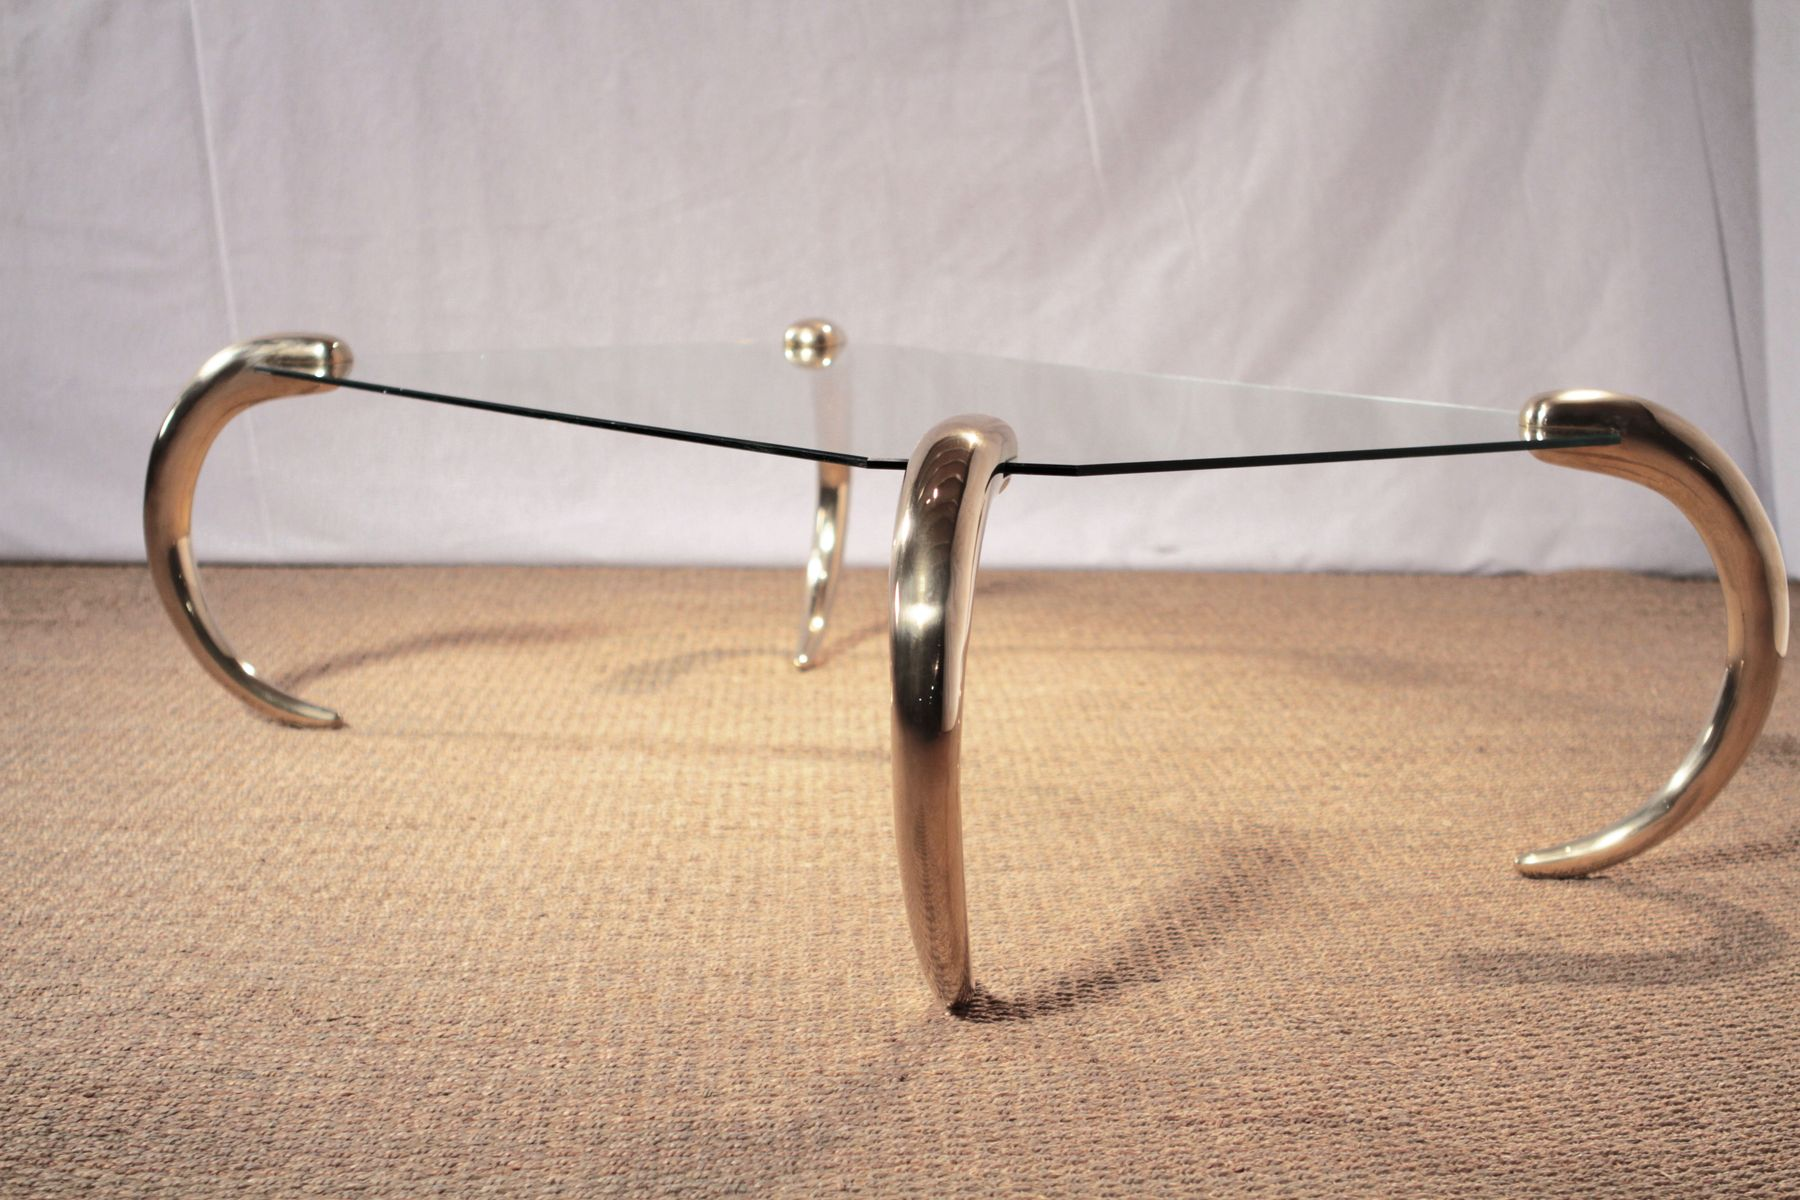 Glass & Brass Coffee Table from Maison Jansen 1970s for sale at